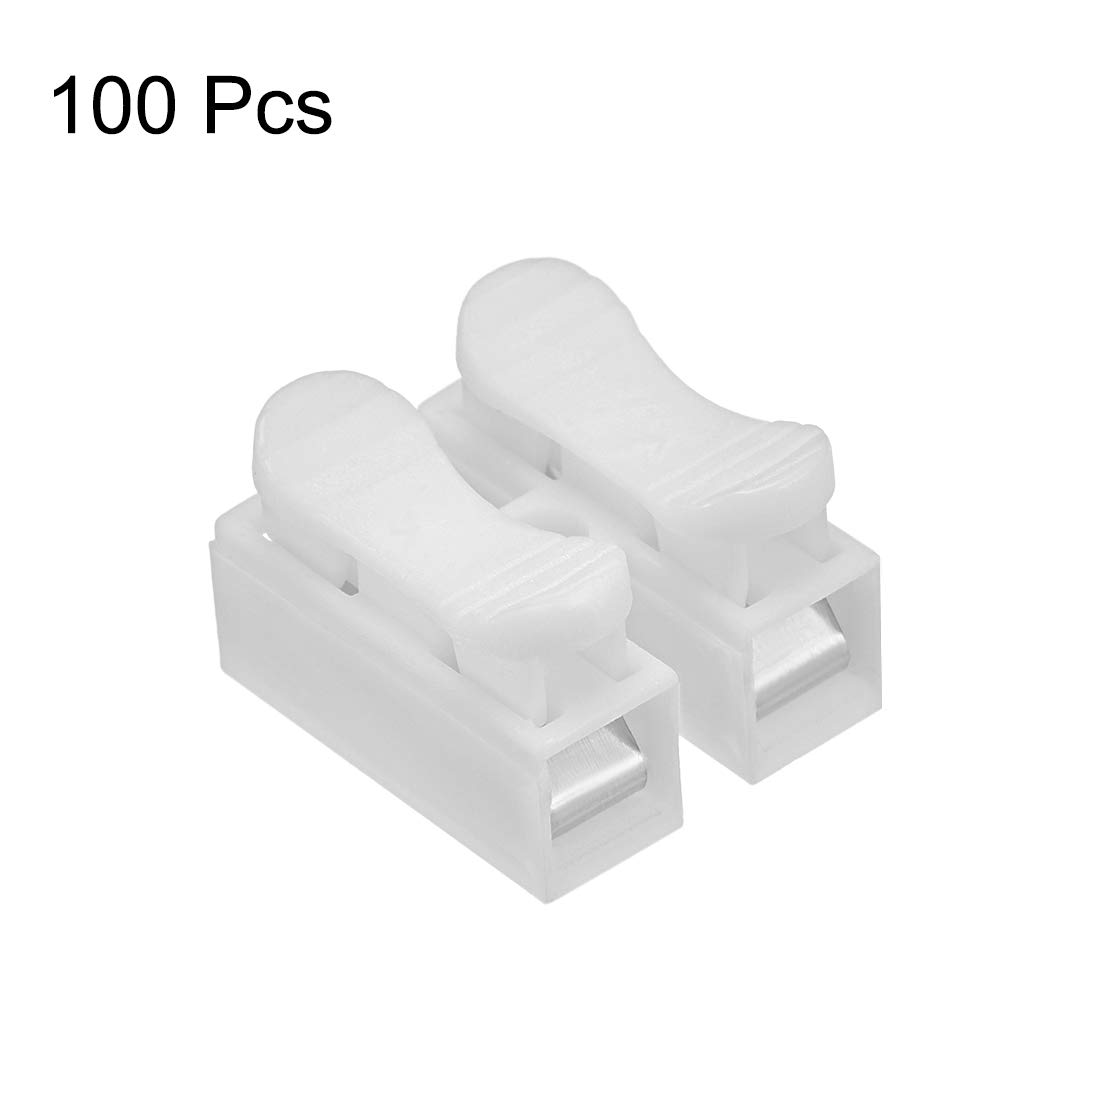 uxcell CH3 Spring Wire Connectors Quick Cable Connector Terminal Barrier Block 30pcs